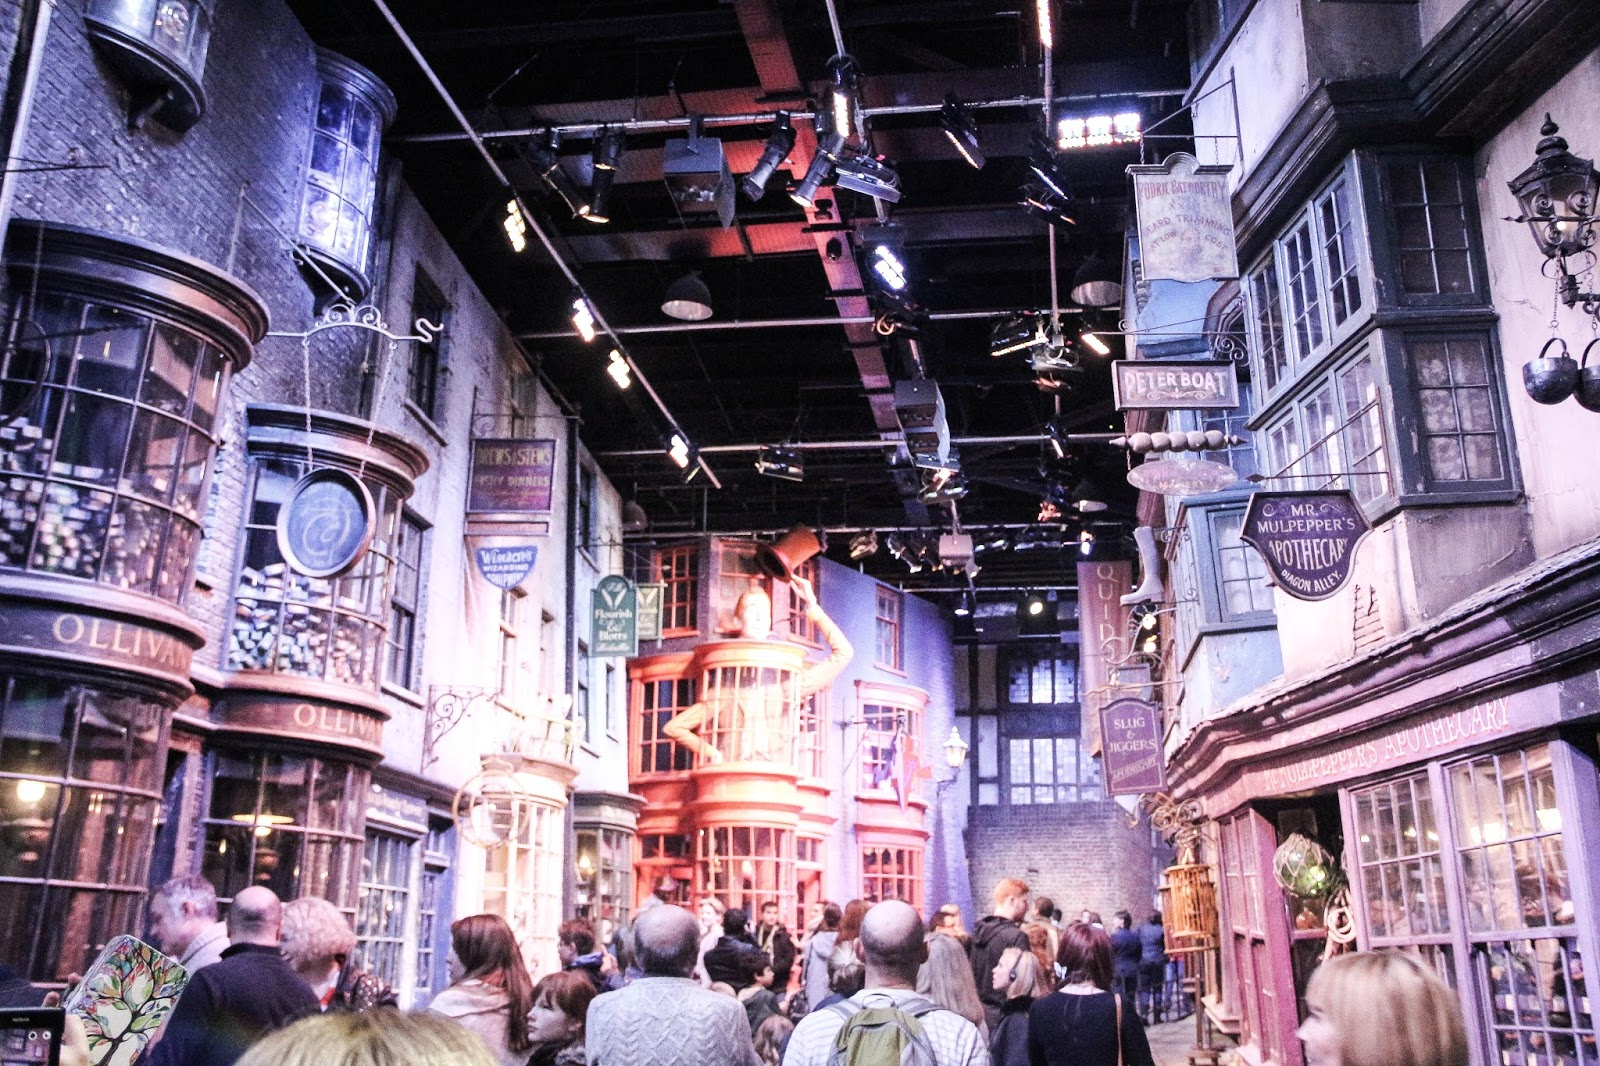 Explorez le Chemin de Traverse dHarry Potter sur Google Street View